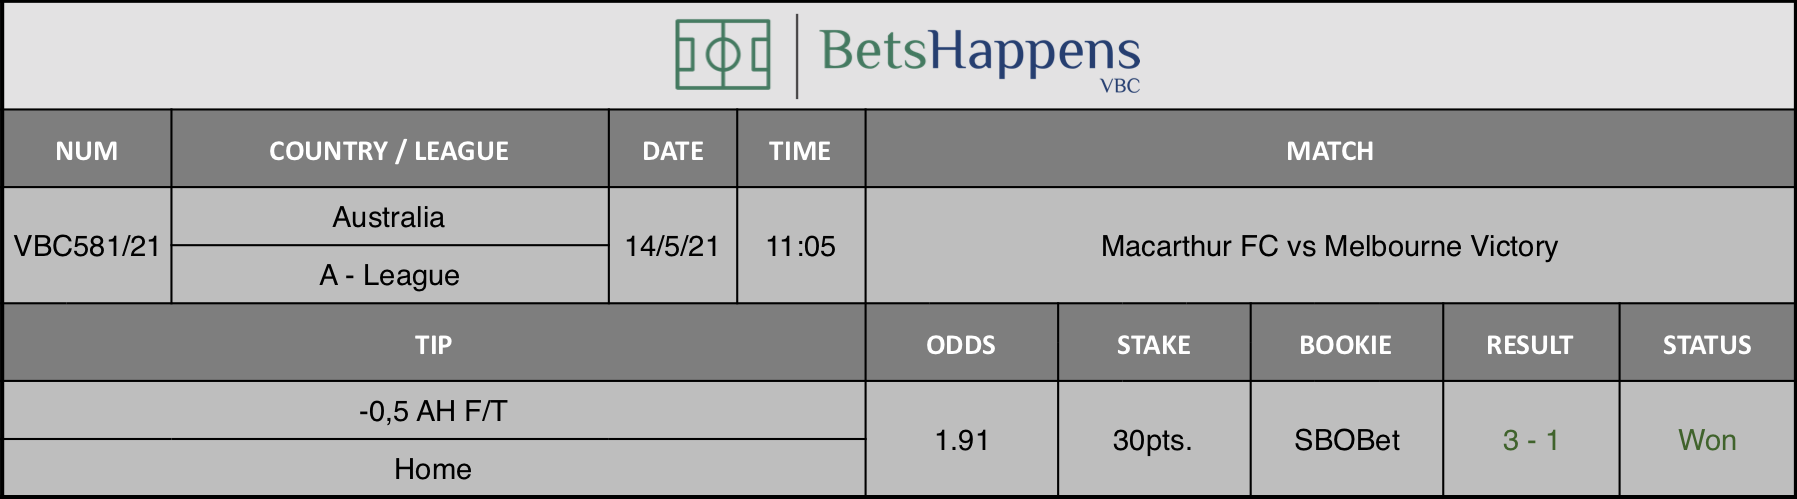 Results of our tip for the Macarthur FC vs Melbourne Victory match where -0,5 AH F/T Home is recommended.